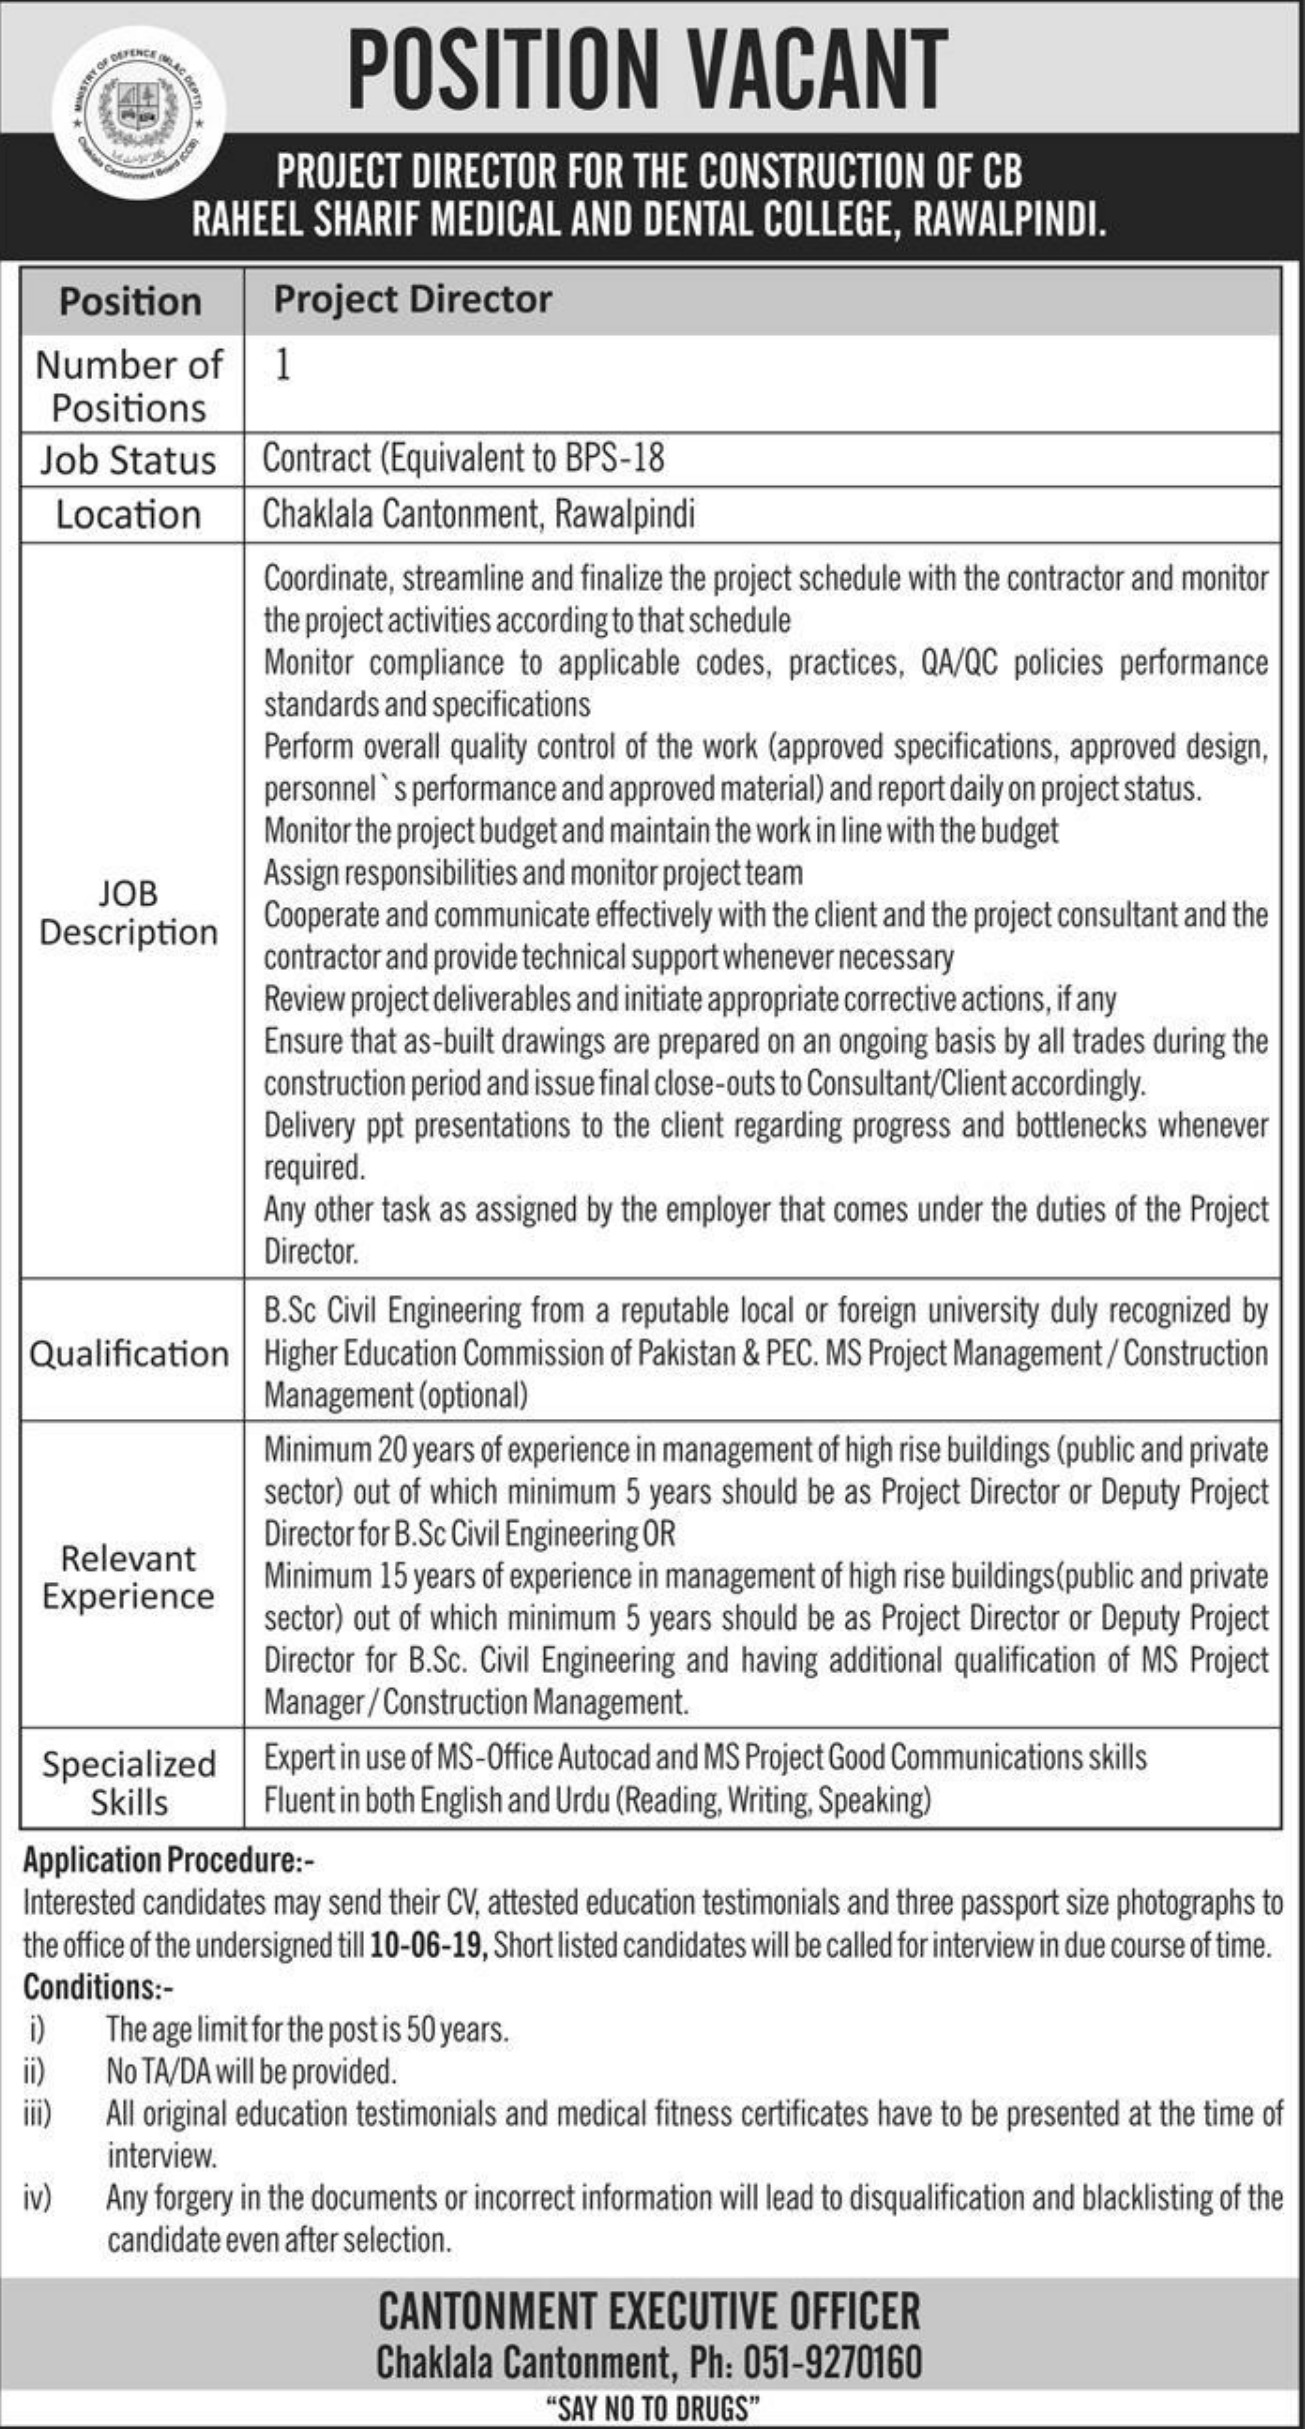 CB Raheel Sharif Medical and Dental College Rawalpindi Jobs 2019